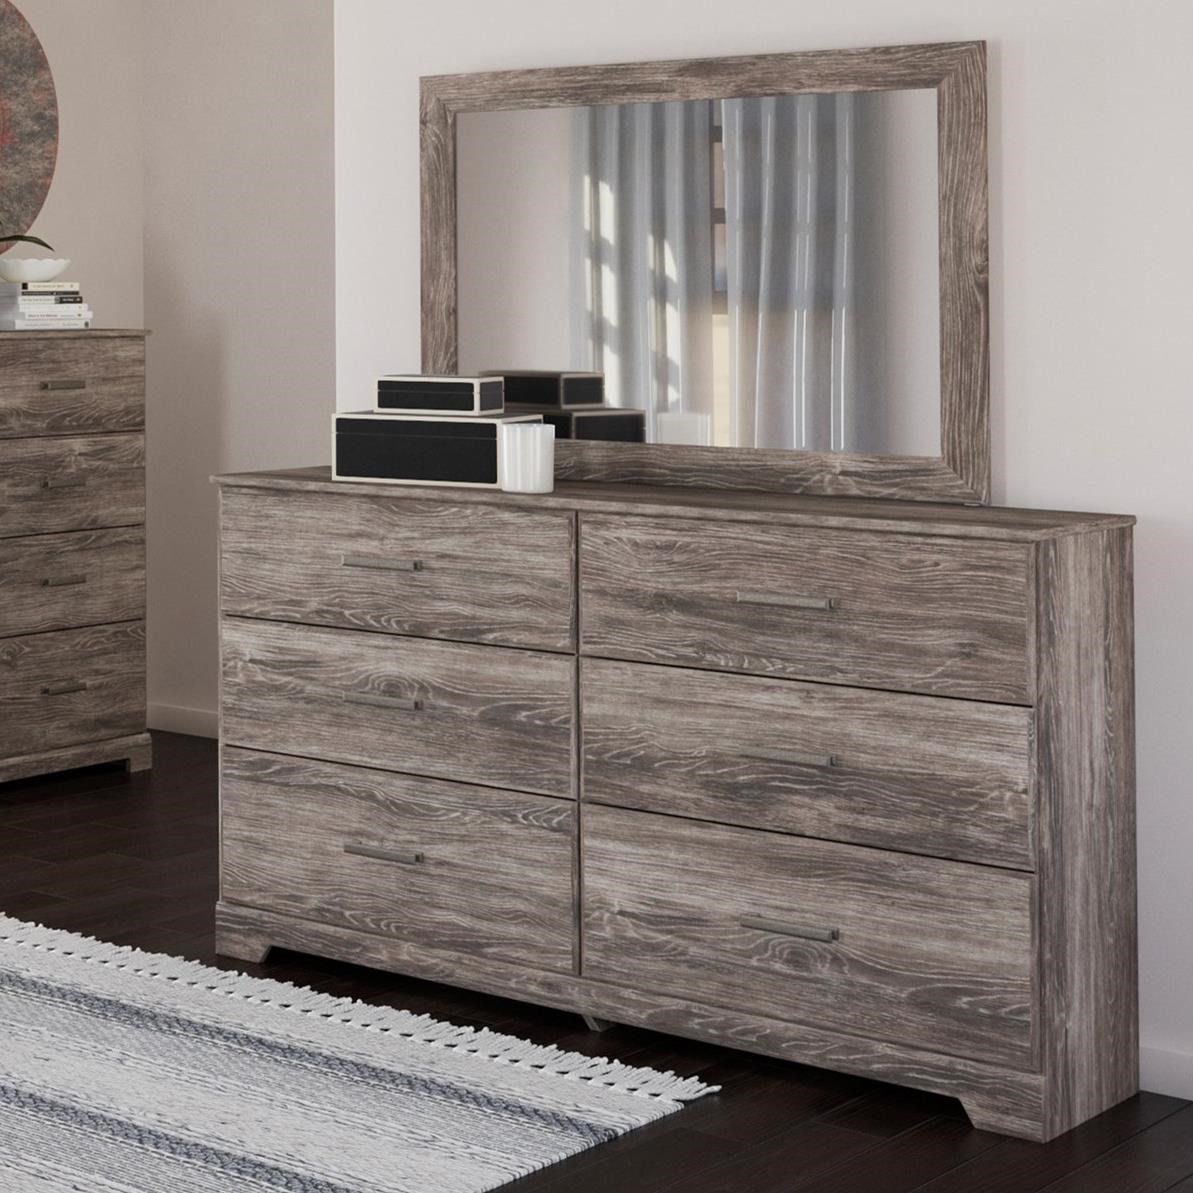 Ralinski Dresser & Bedroom Mirror by Signature Design by Ashley at Sparks HomeStore